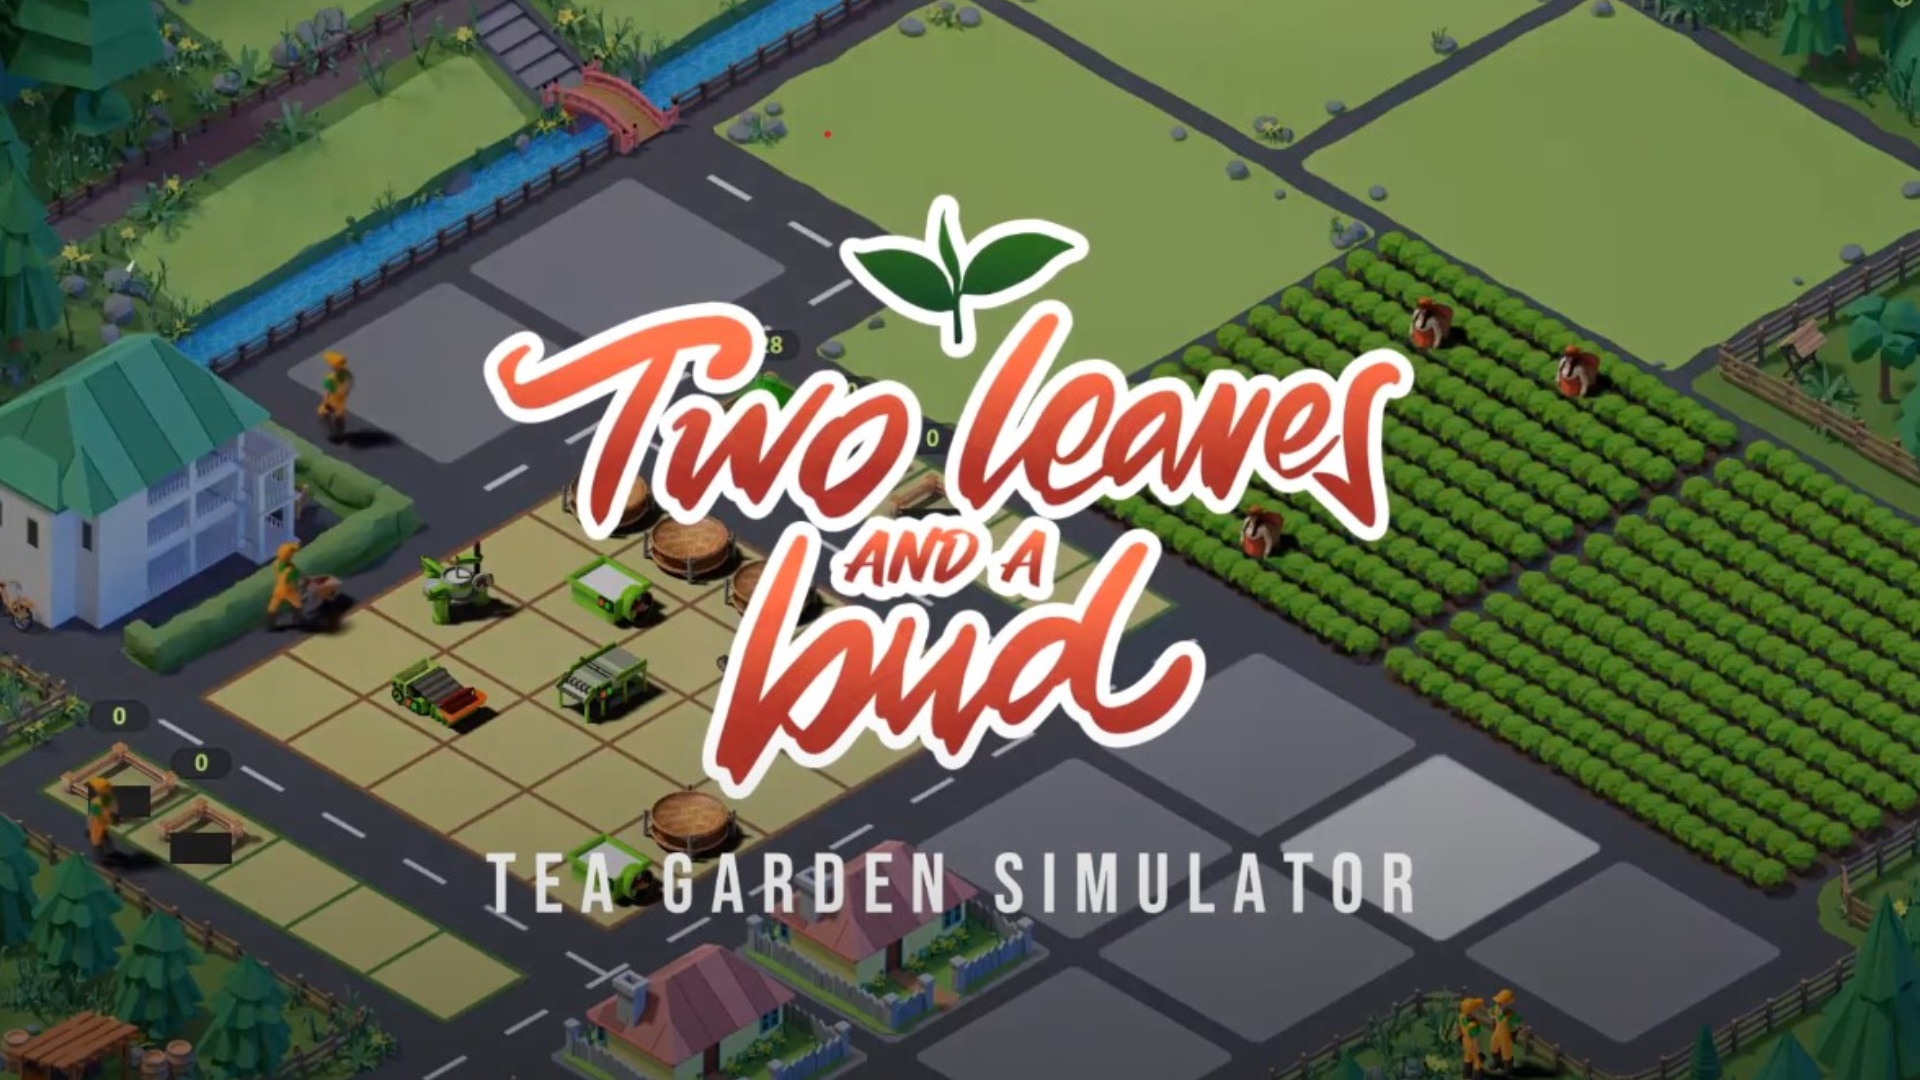 Tea garden simulator W A